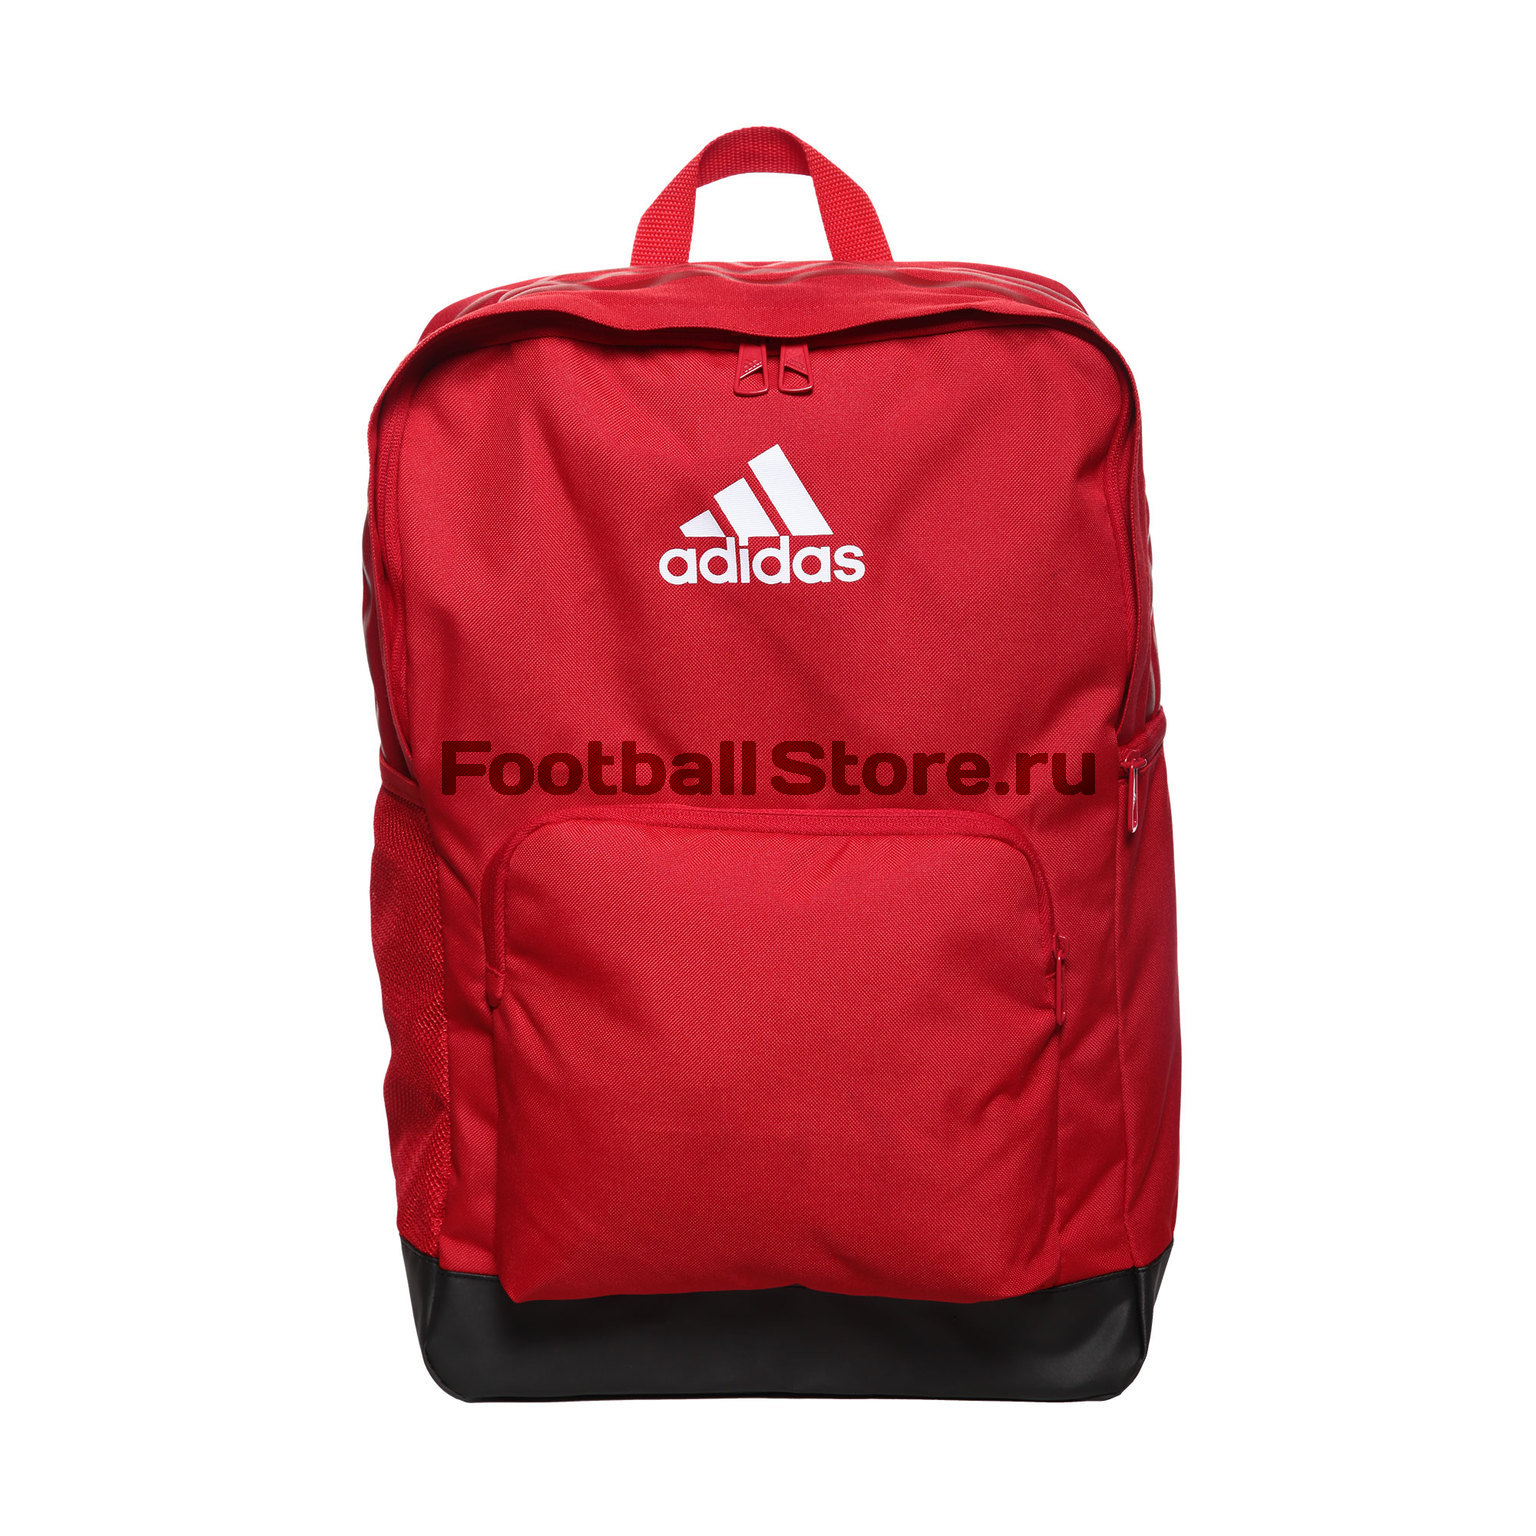 Рюкзак Adidas Tiro BP BS4761 рюкзак adidas tiro ballnet b46132